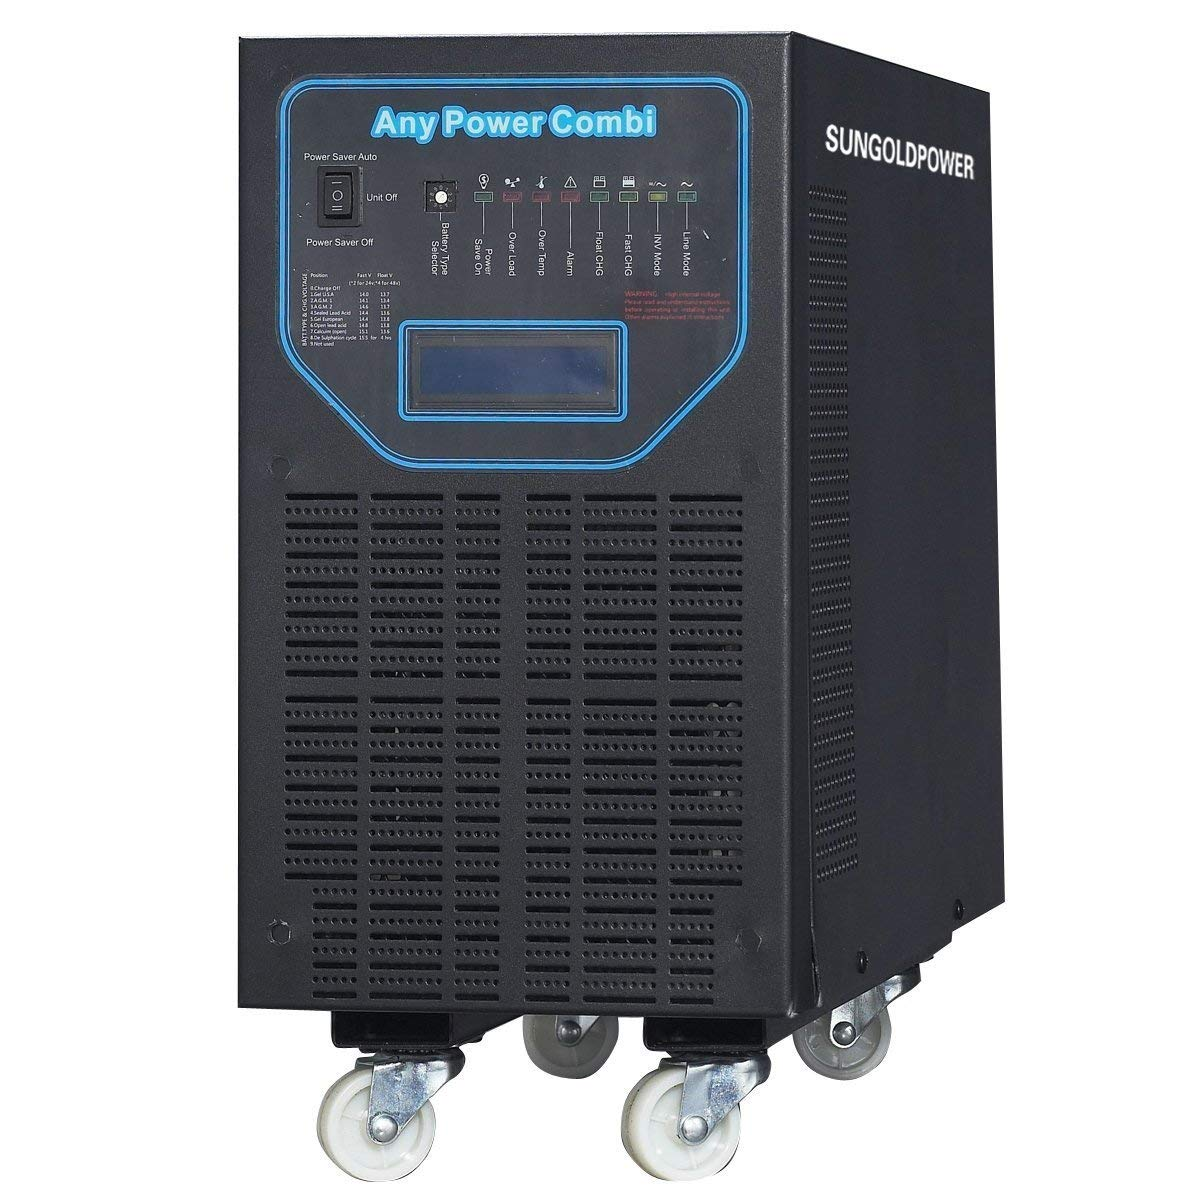 SUNGOLDPOWER 6000W Peak 18000W APV Low Frequency Pure Sine Wave Inverter DC 24V AC Input 240V Split Phase AC Output 120V 240V Battery Charger Built In MPPT 60Amp Solar Charger Controller LCD AGS 48KG